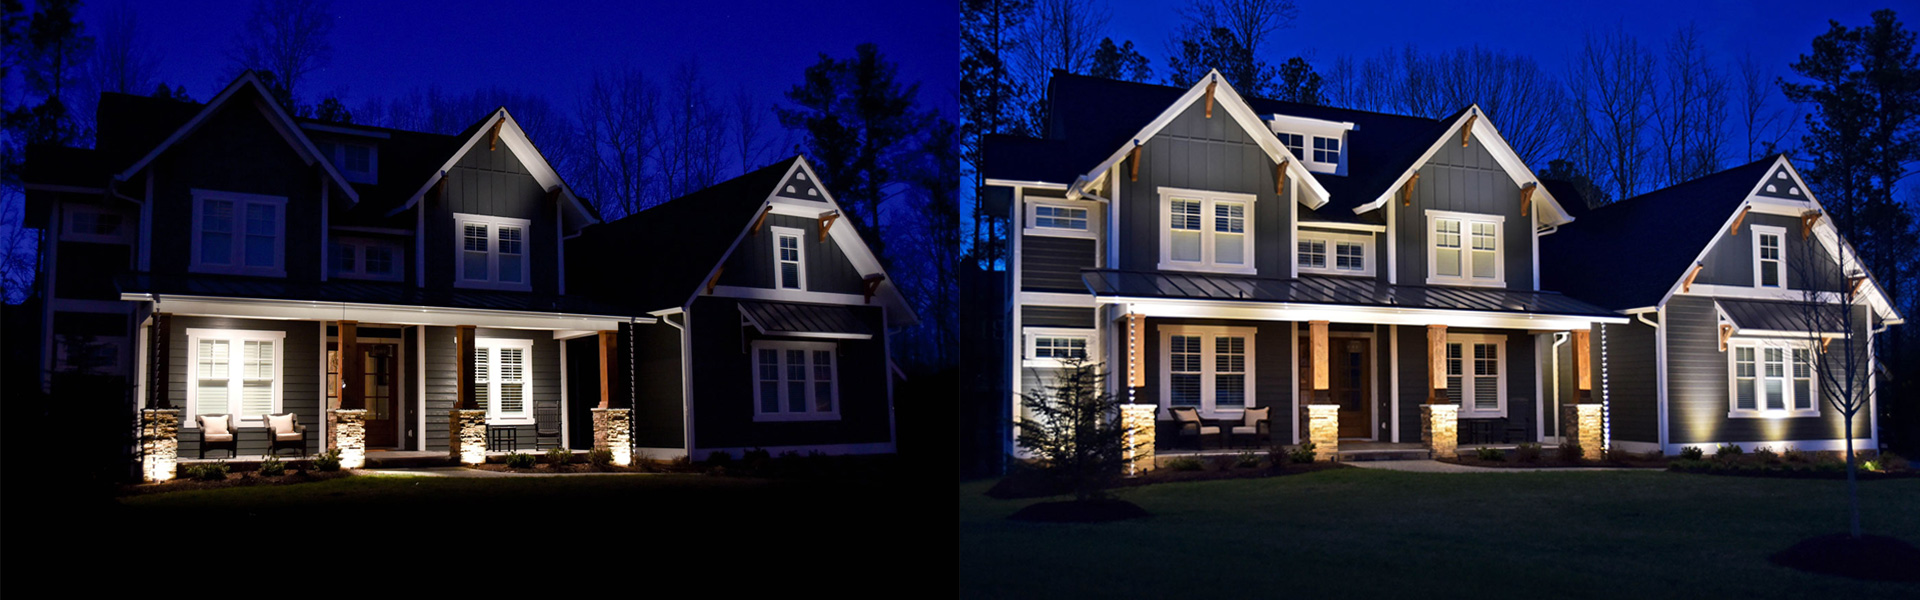 Before & After LED Landscape Lighting Maintenance